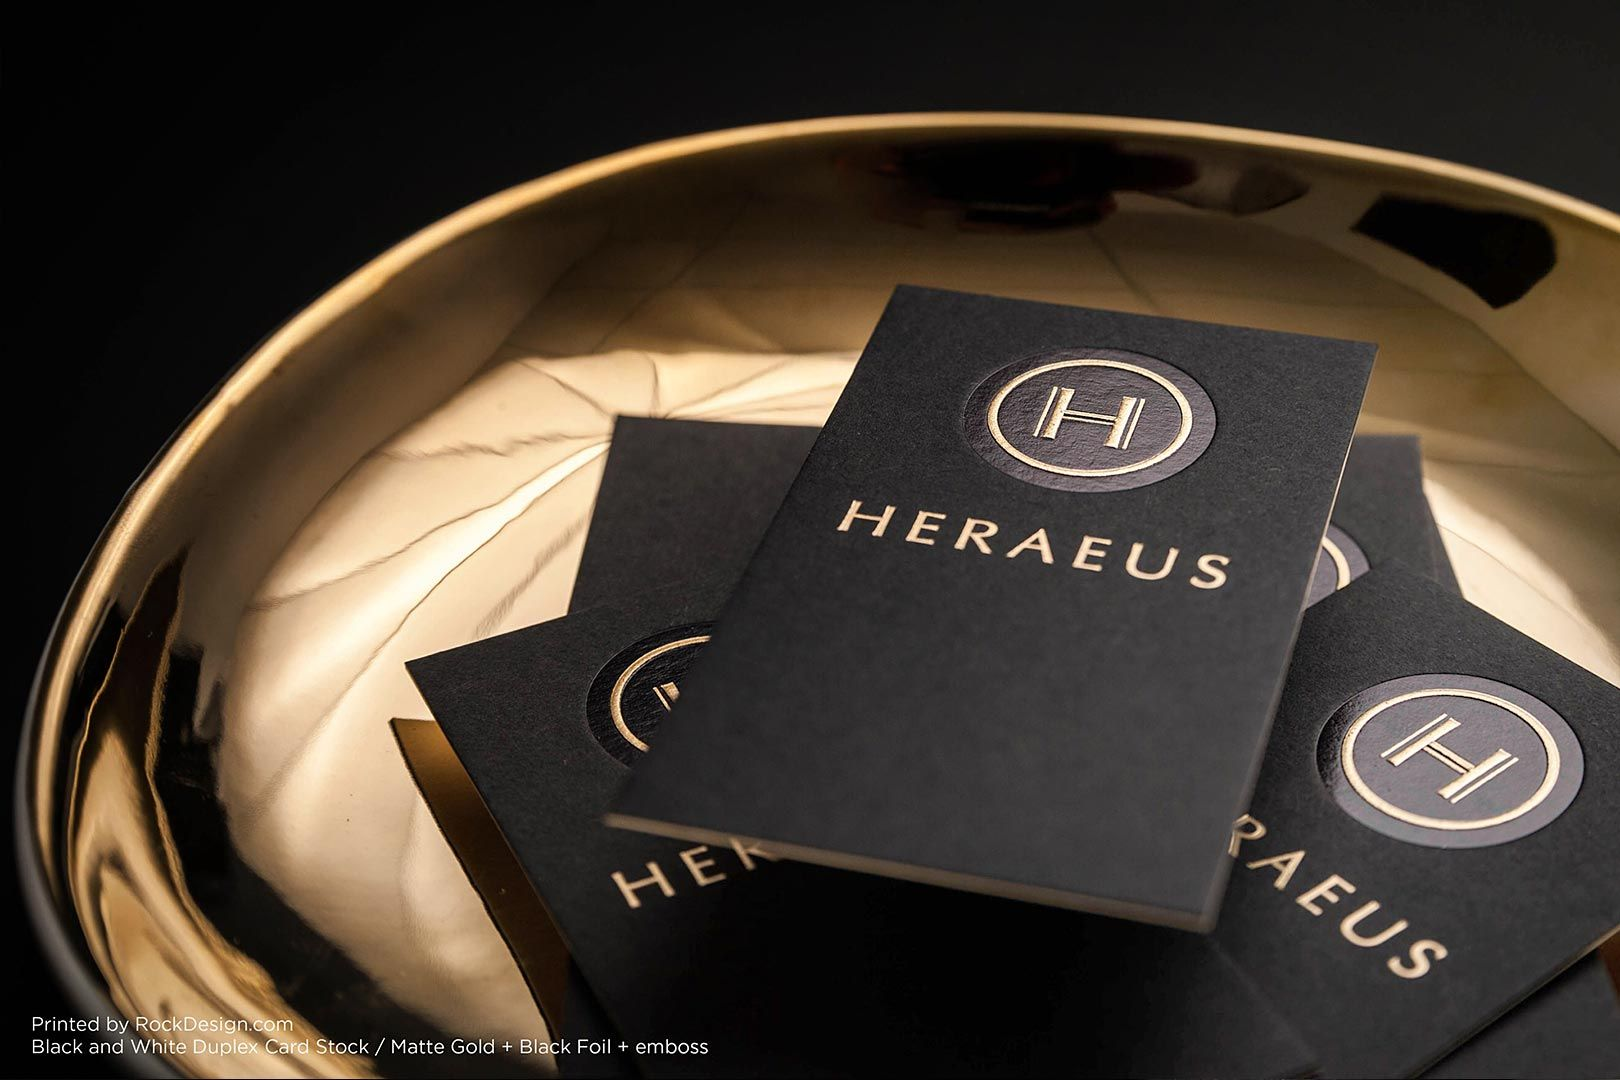 Black and white foil stamped embossed great business card design - Heraeus | RockDesign Luxury Business Card Printing